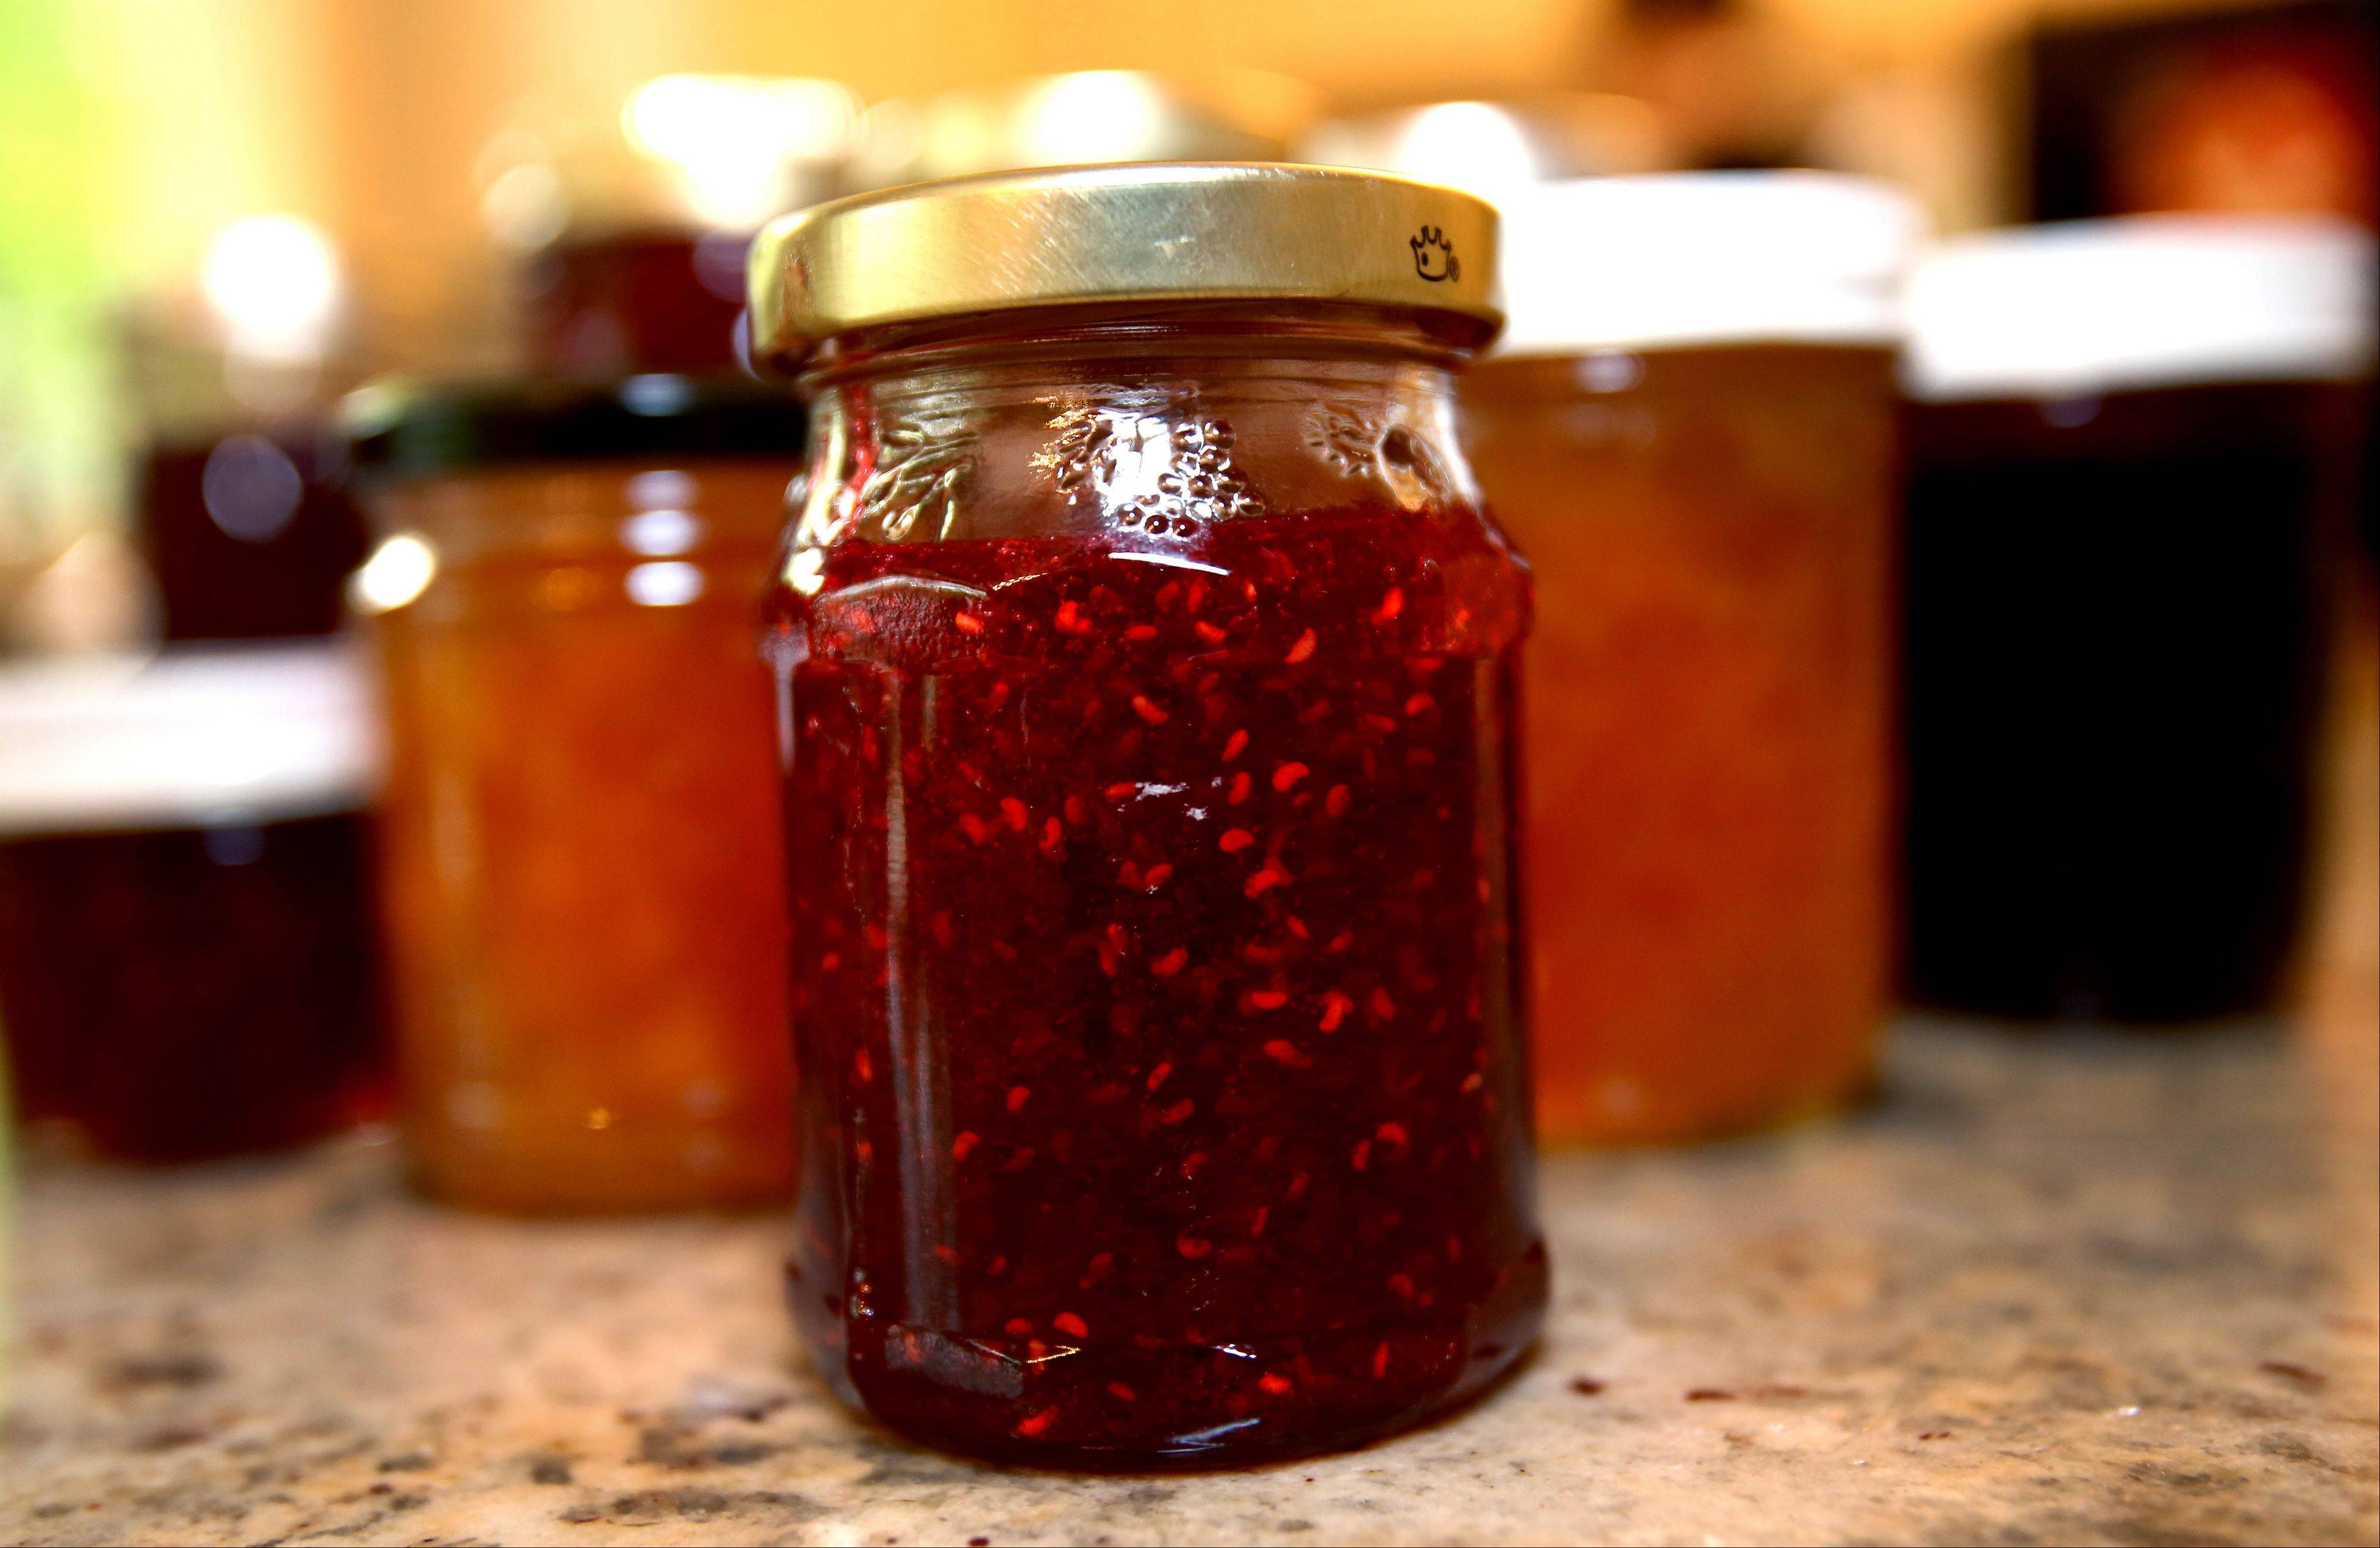 Trudy Van Slooten enjoys making fresh jam. She recommends topping jars of peach and strawberry jam with paraffin wax.